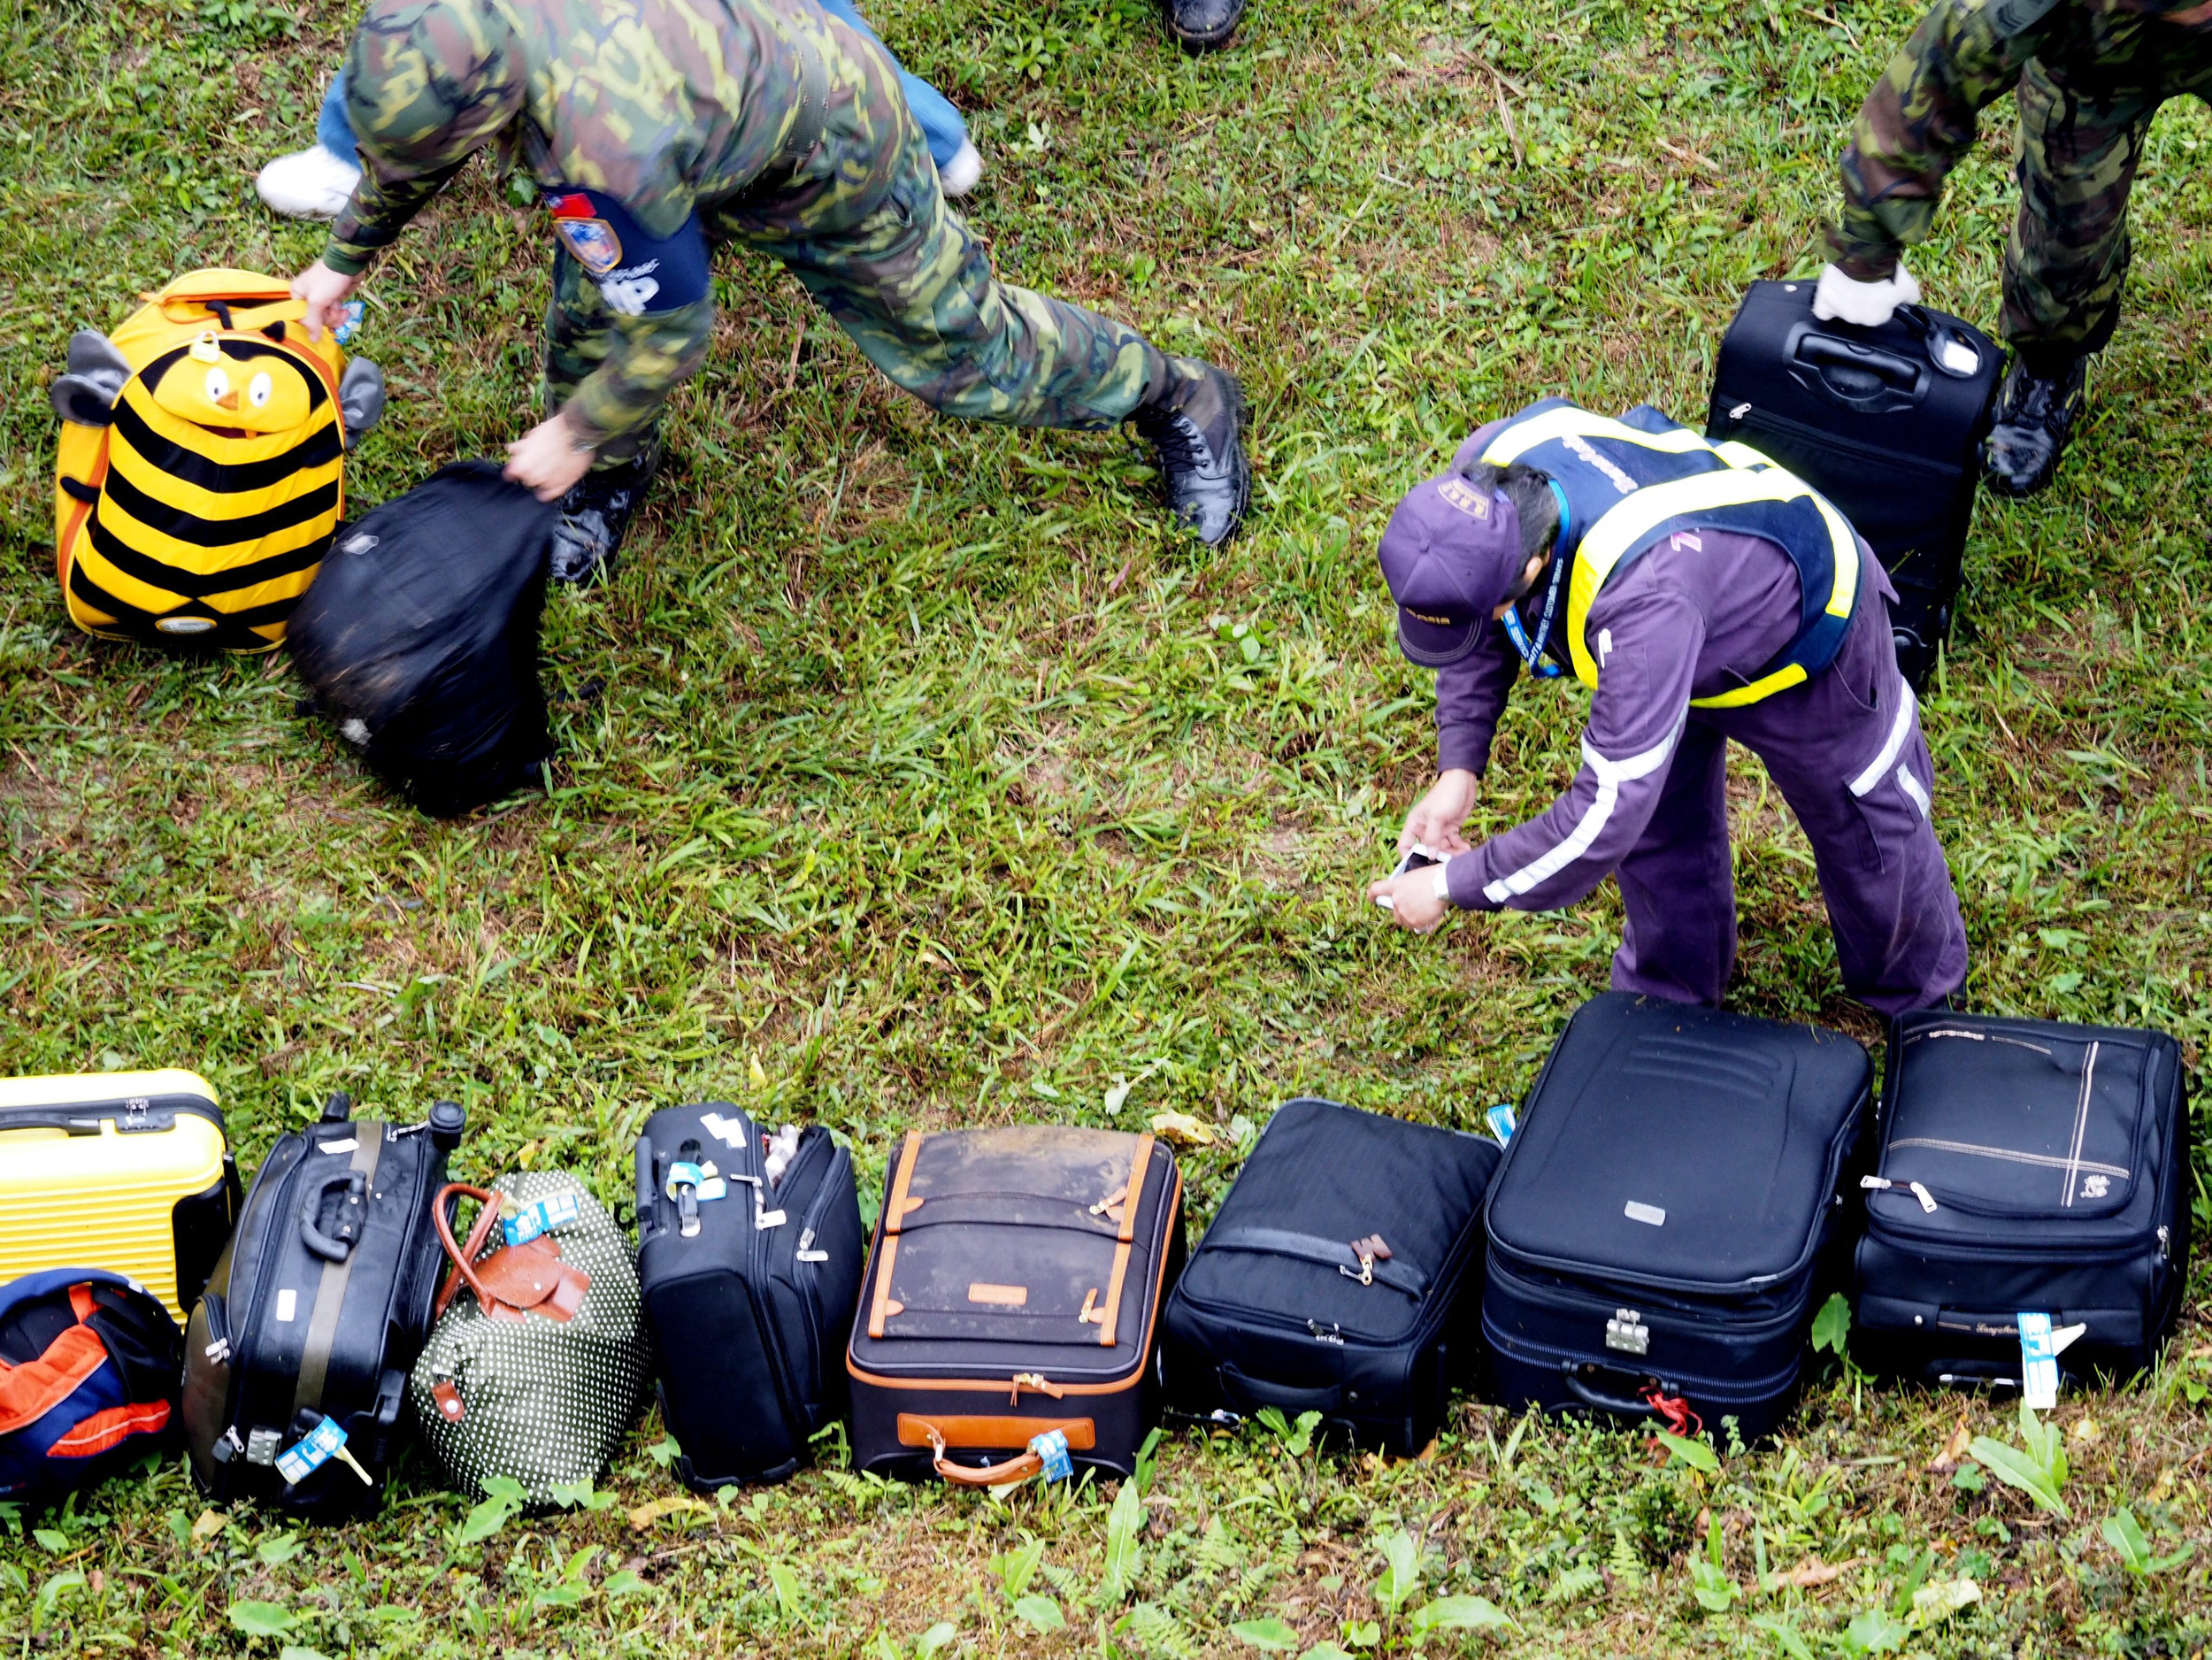 A policeman takes photos of passengers' luggage recovered from a TransAsia Airways passenger plane which crashed into the Keelung River in Taipei, Taiwan on Feb. 4, 2015.